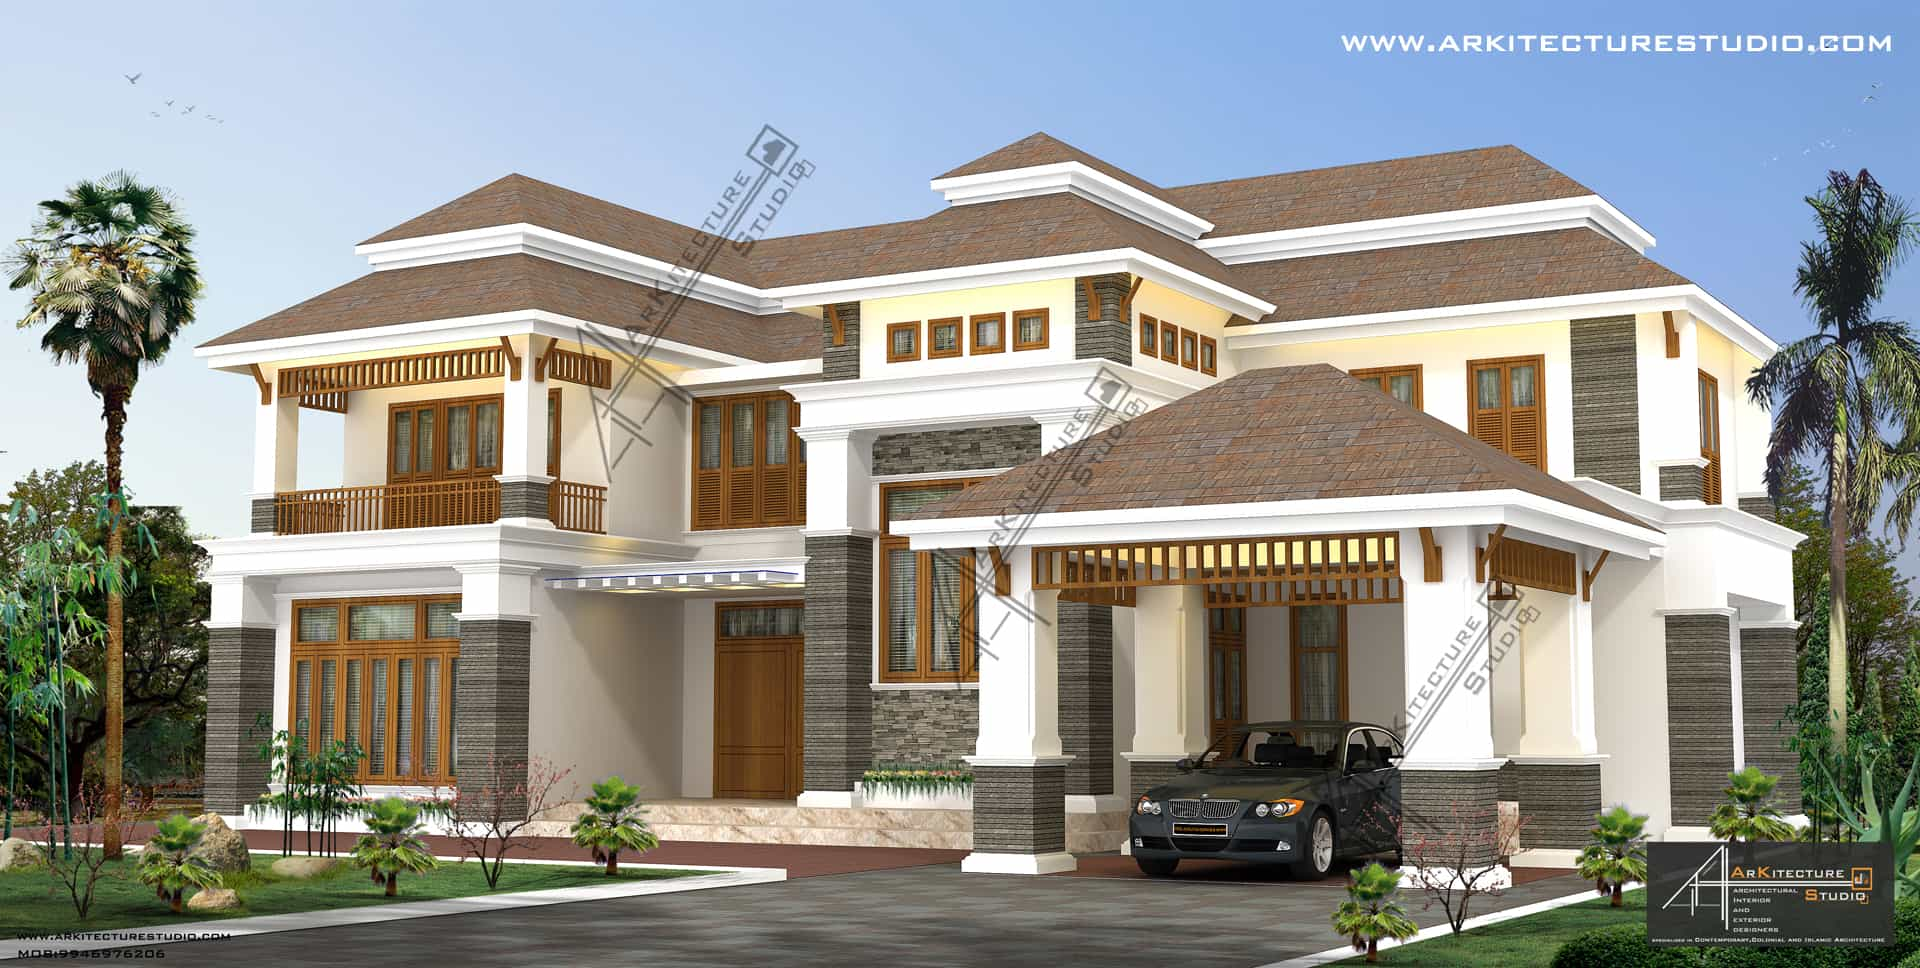 Colonial style house designs in kerala at 3500 sqft 5000 for Colonial style house plans kerala